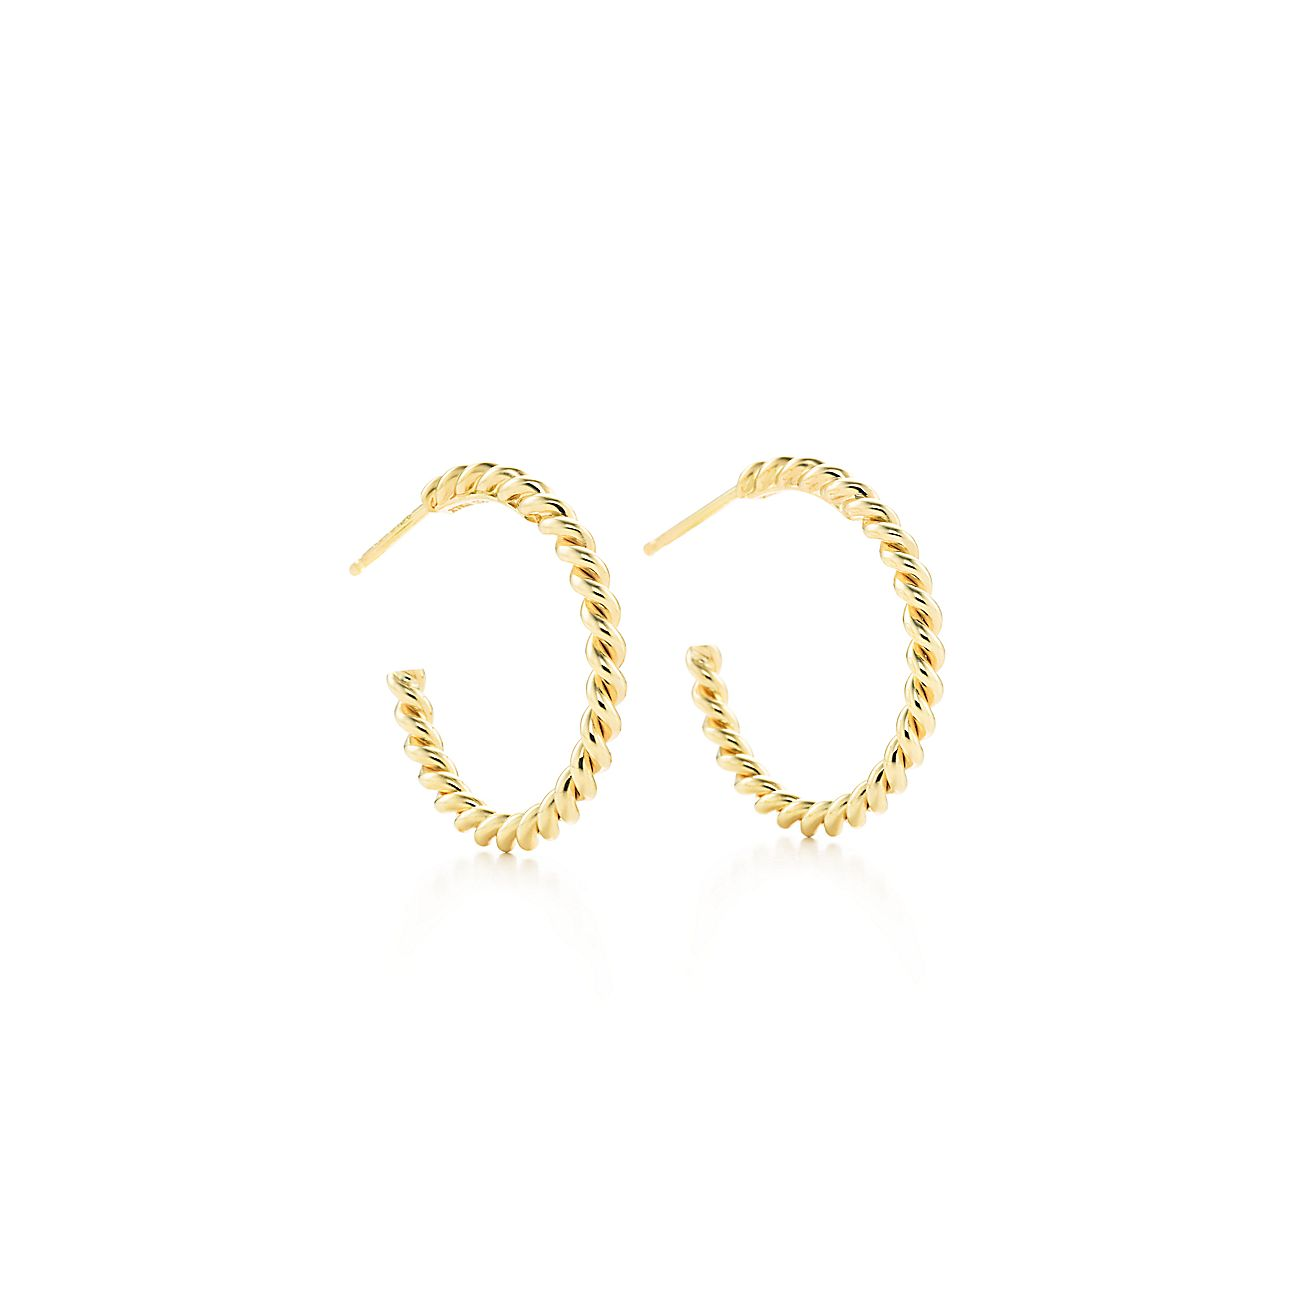 Tiffany Twist:Hoop Earrings